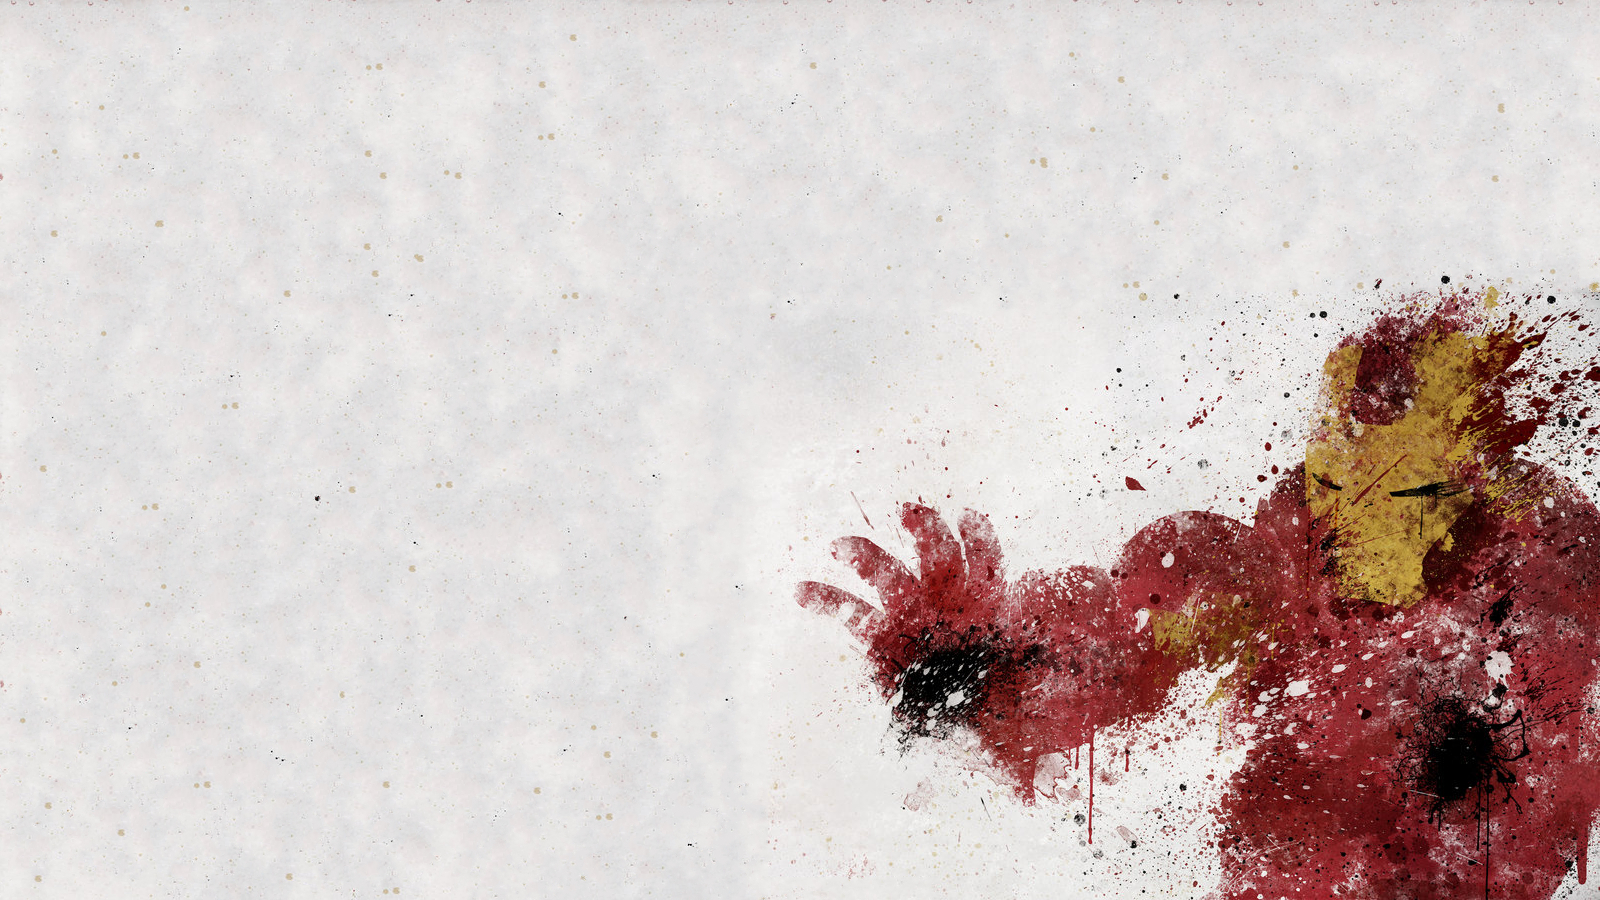 Superhero Hd Wallpapers Iphone Iron Man Wallpaper And Background Image 1600x900 Id 437967